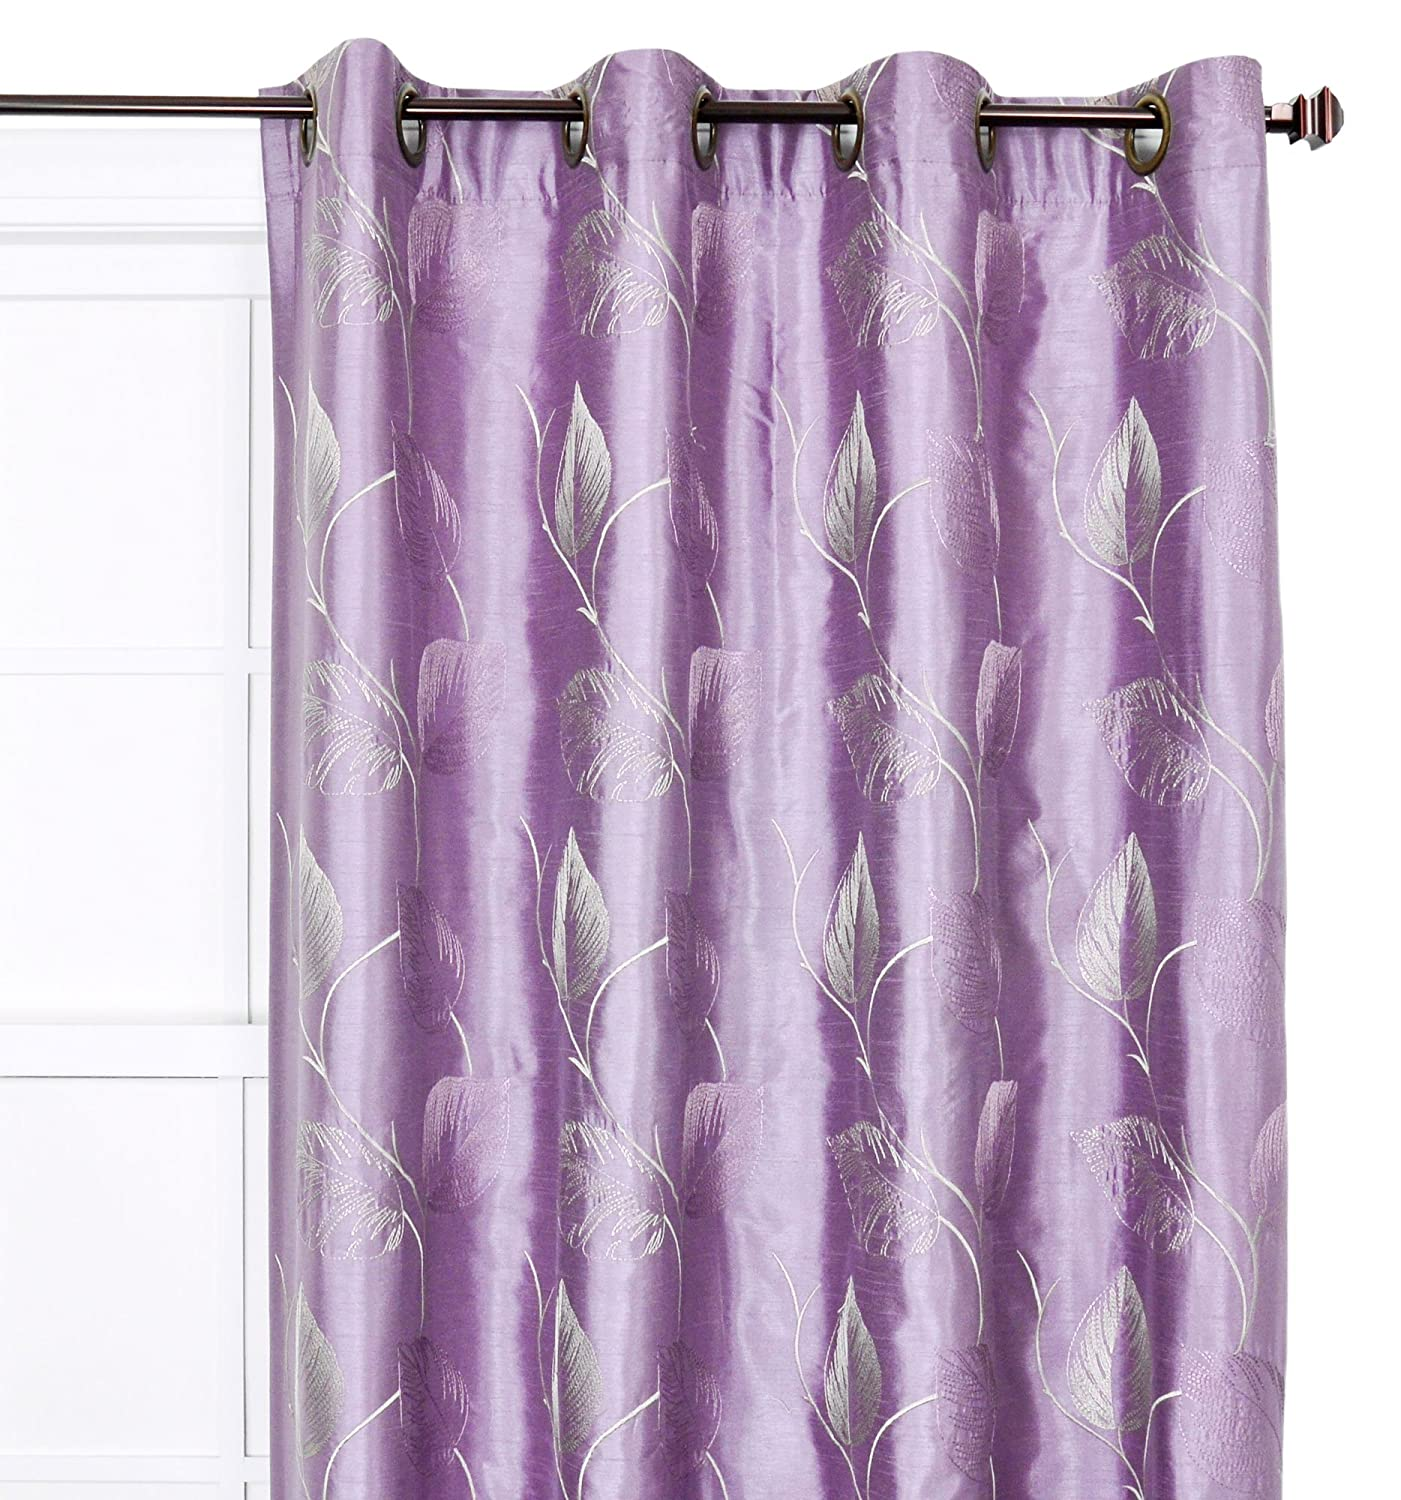 Ellis Curtain Astonish 50 by 63-Inch Embroidered Leaf Grommet Top Lined Window Treatment Panel, Mocha 752710